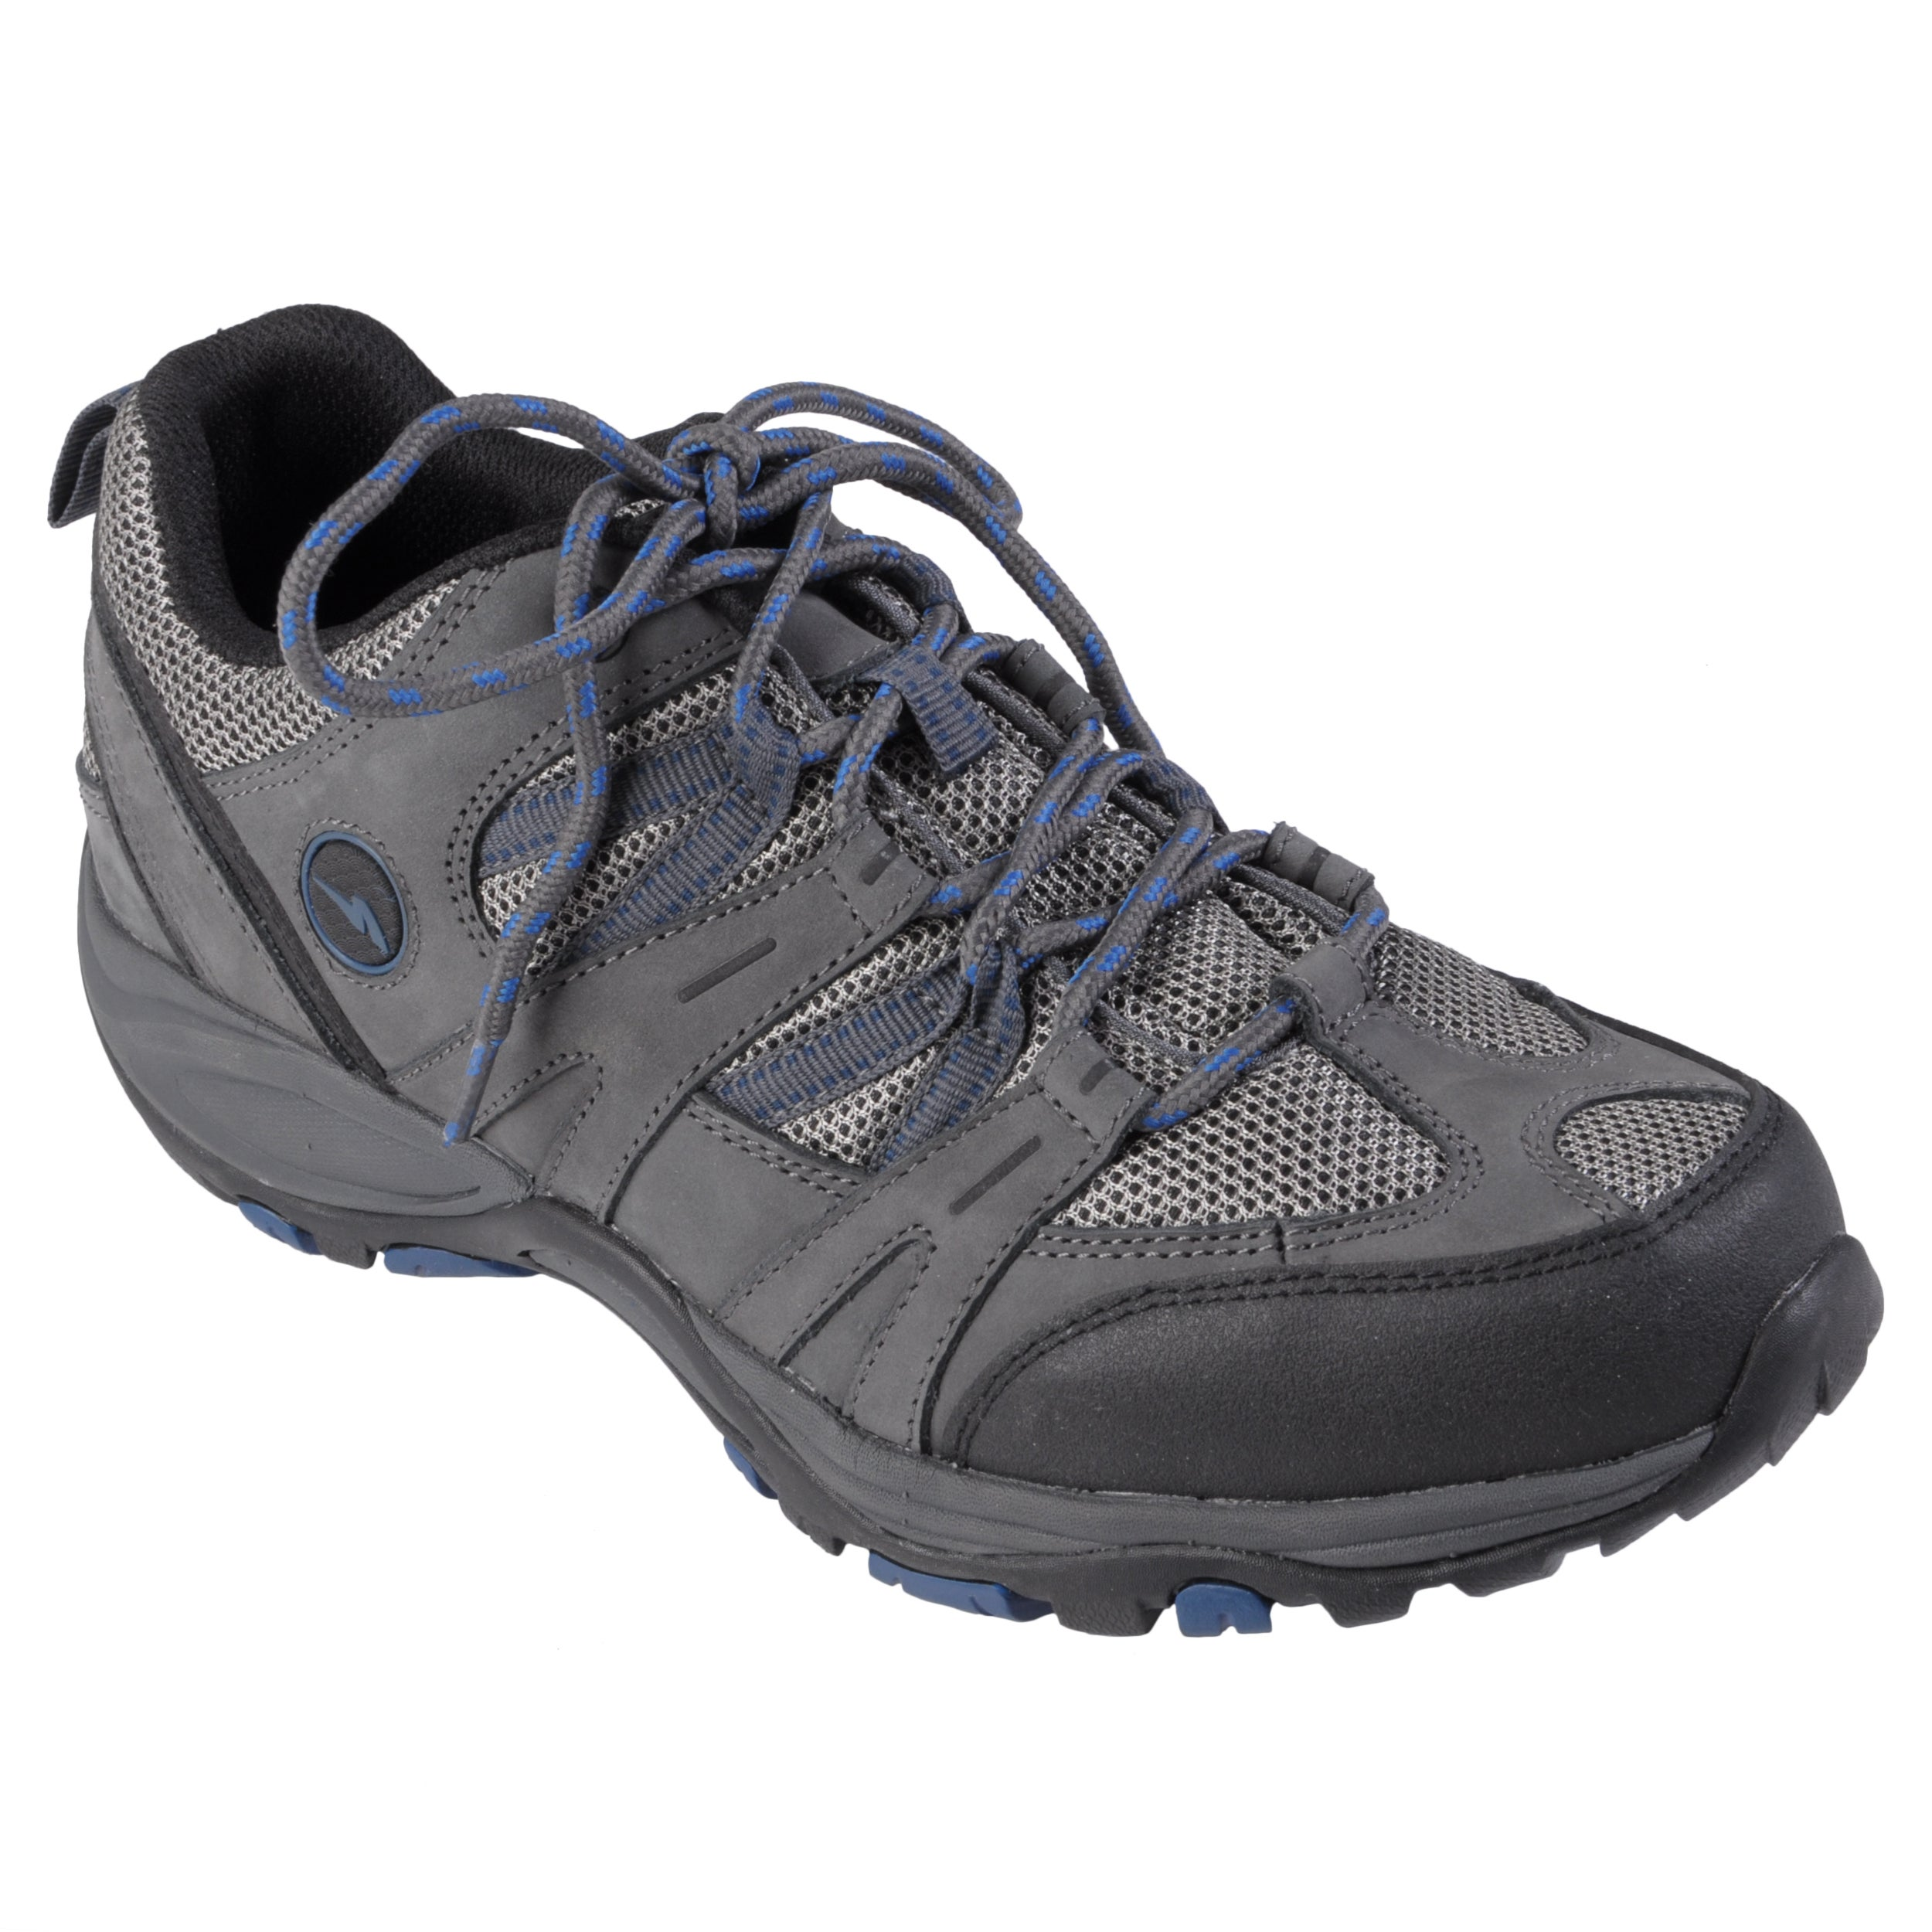 Slickrock Men's Athletic Composite Waterproof Lace-Up Hiking Shoes